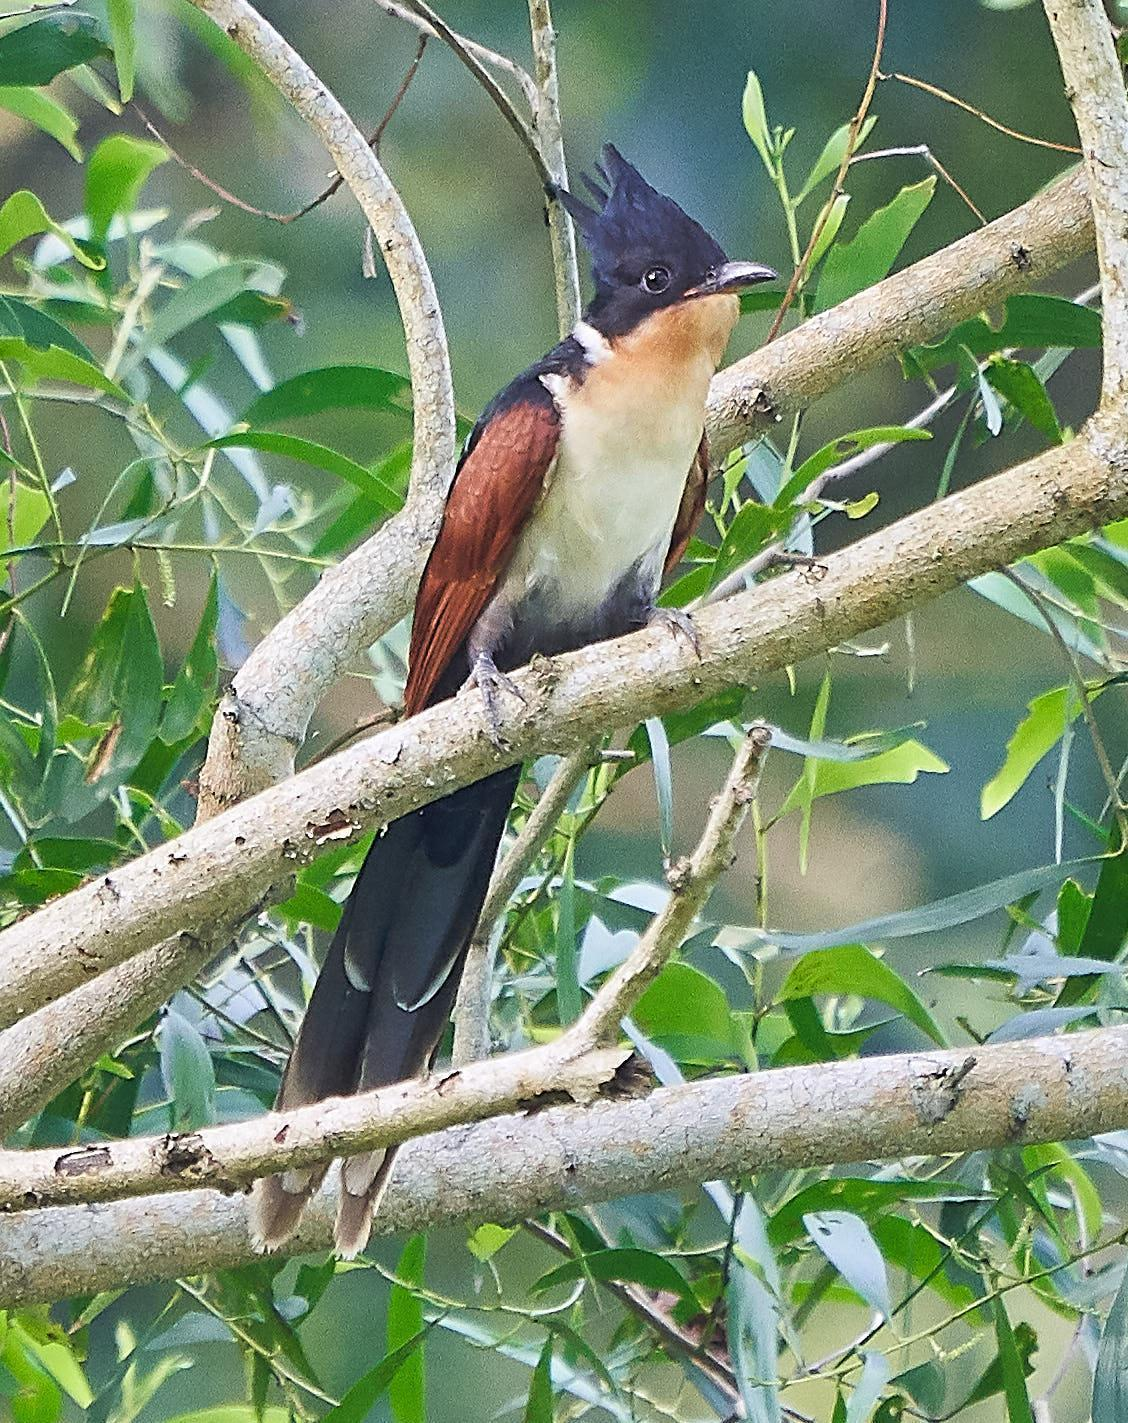 Chestnut-winged Cuckoo Photo by Steven Cheong